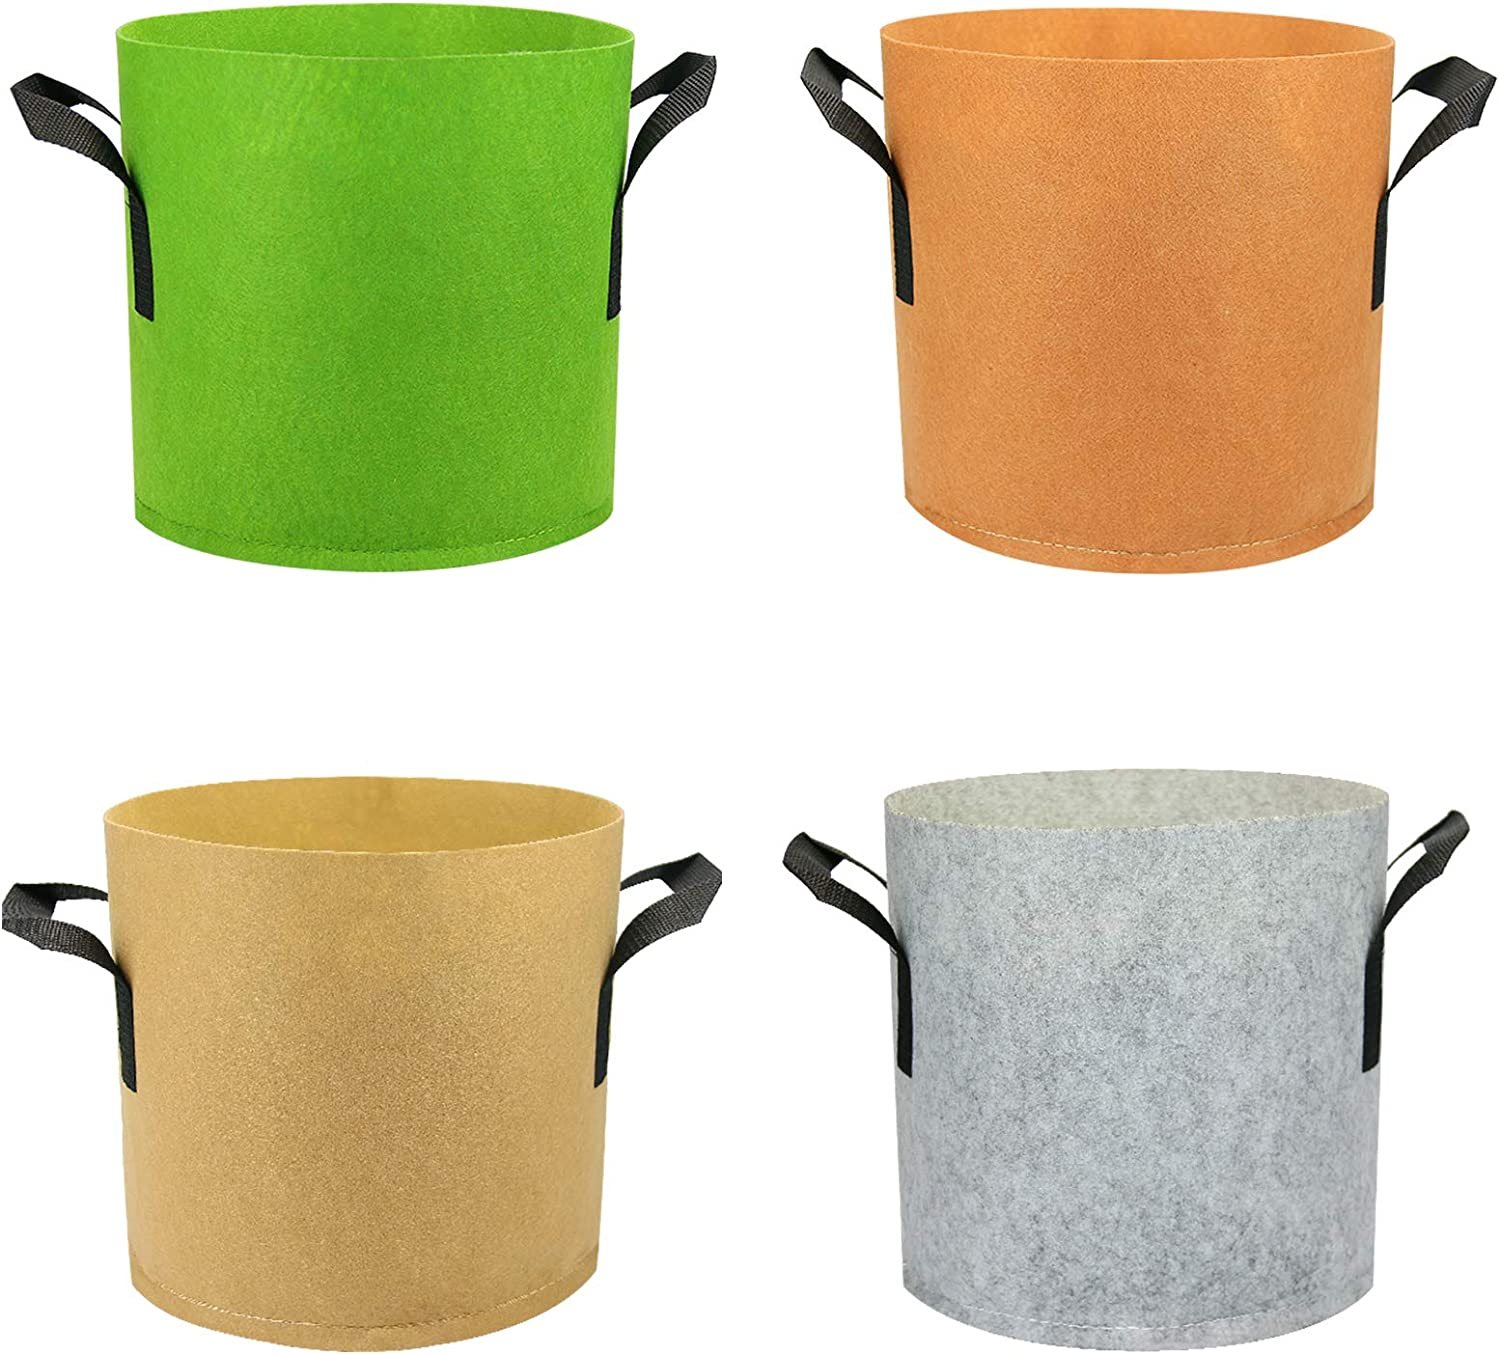 INNOLITES Grow Bags 4 Pack Colorful 5 Thickened 3 Mix 4 years warranty Branded goods Plant